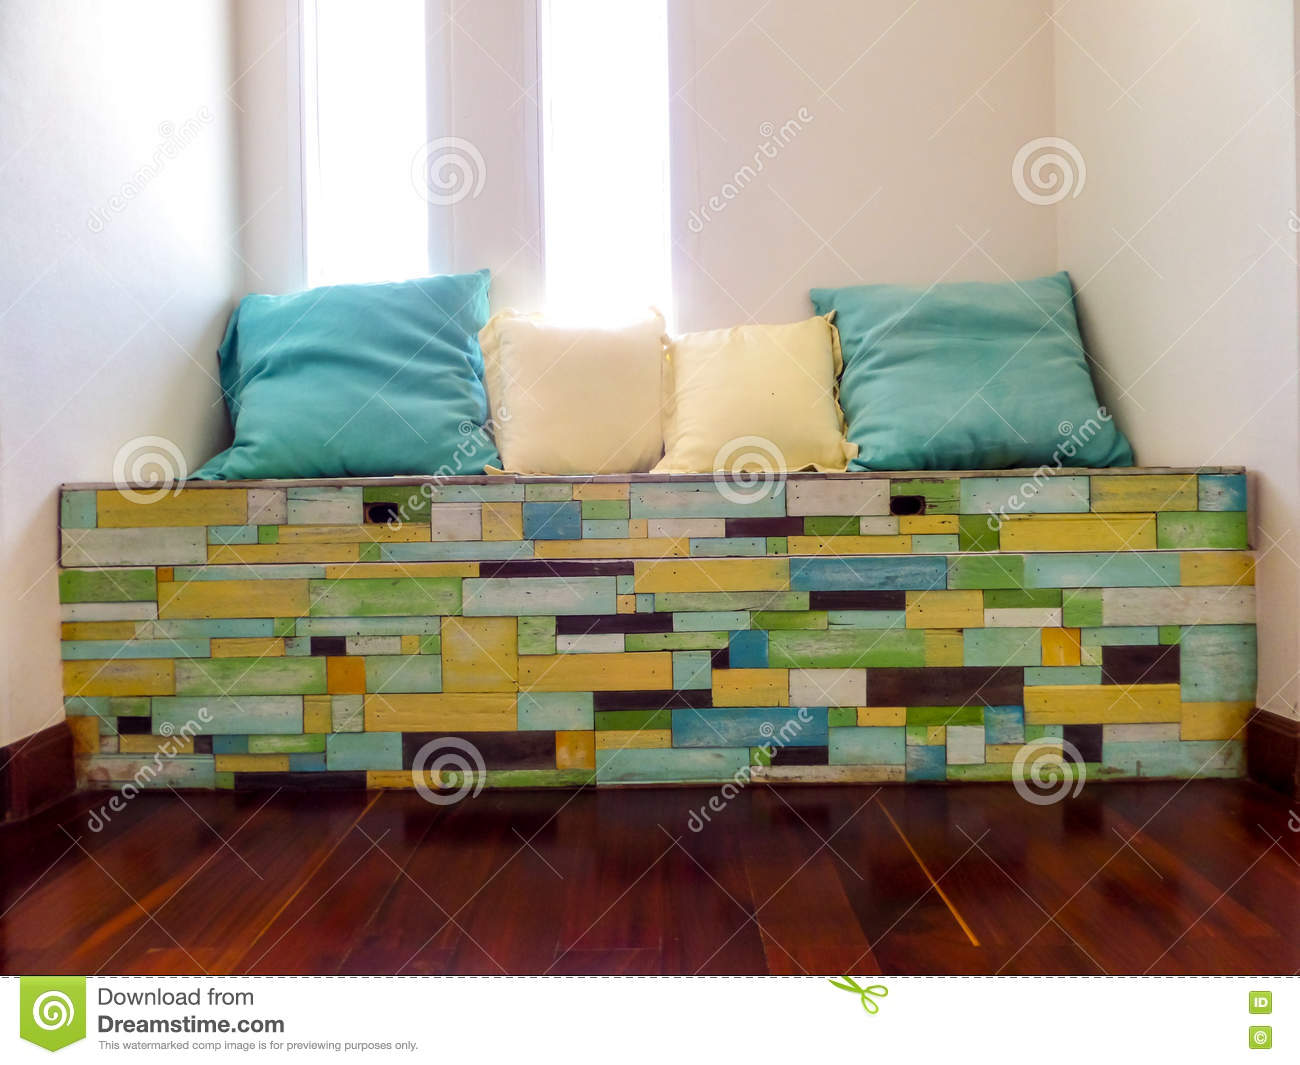 Prime Pillows On Wood Pieces Bench Random Fancy Color On Surface Gmtry Best Dining Table And Chair Ideas Images Gmtryco